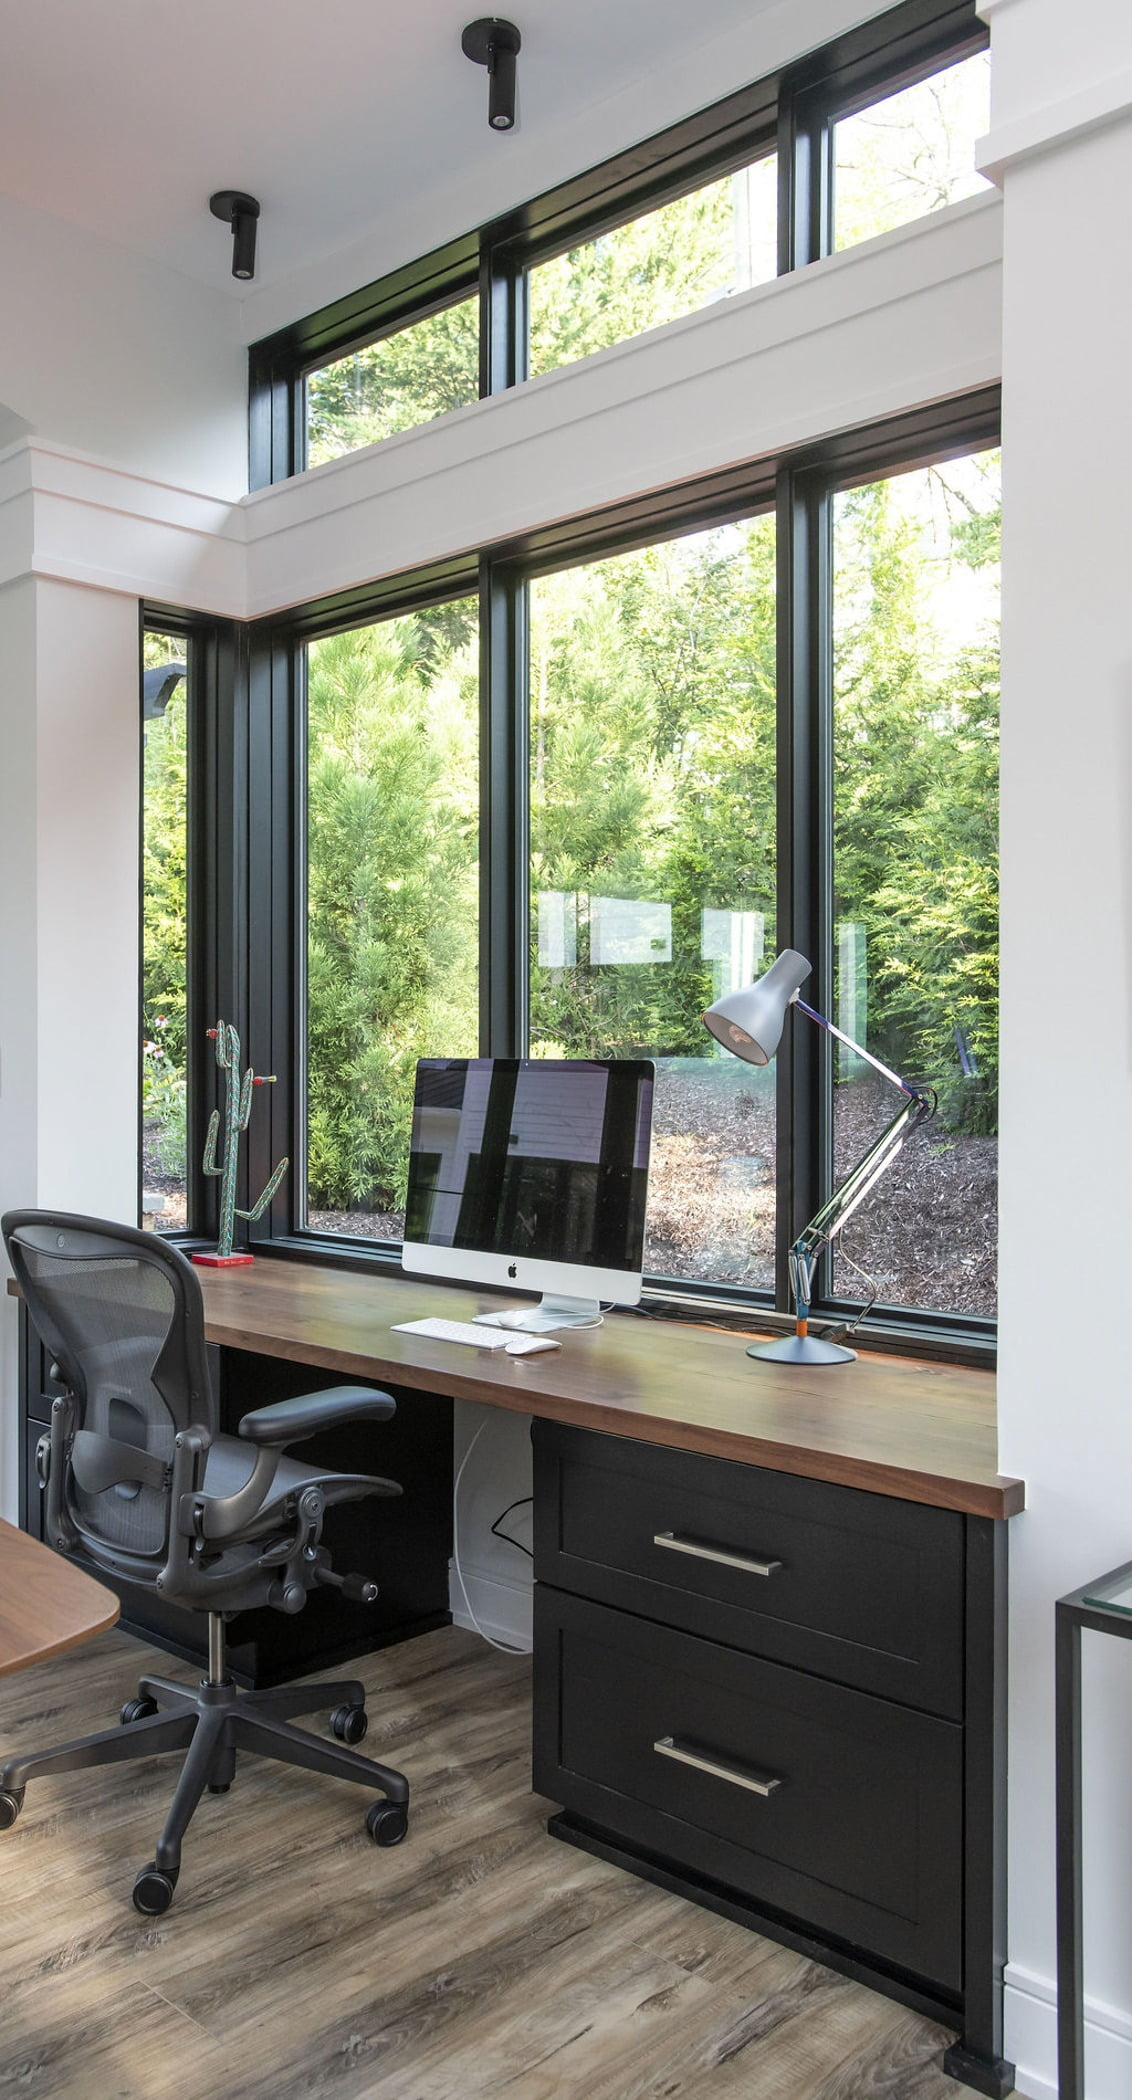 Modern office desk space with light hardwood flooring, black cabinetry, wood countertops and ceiling-high windows